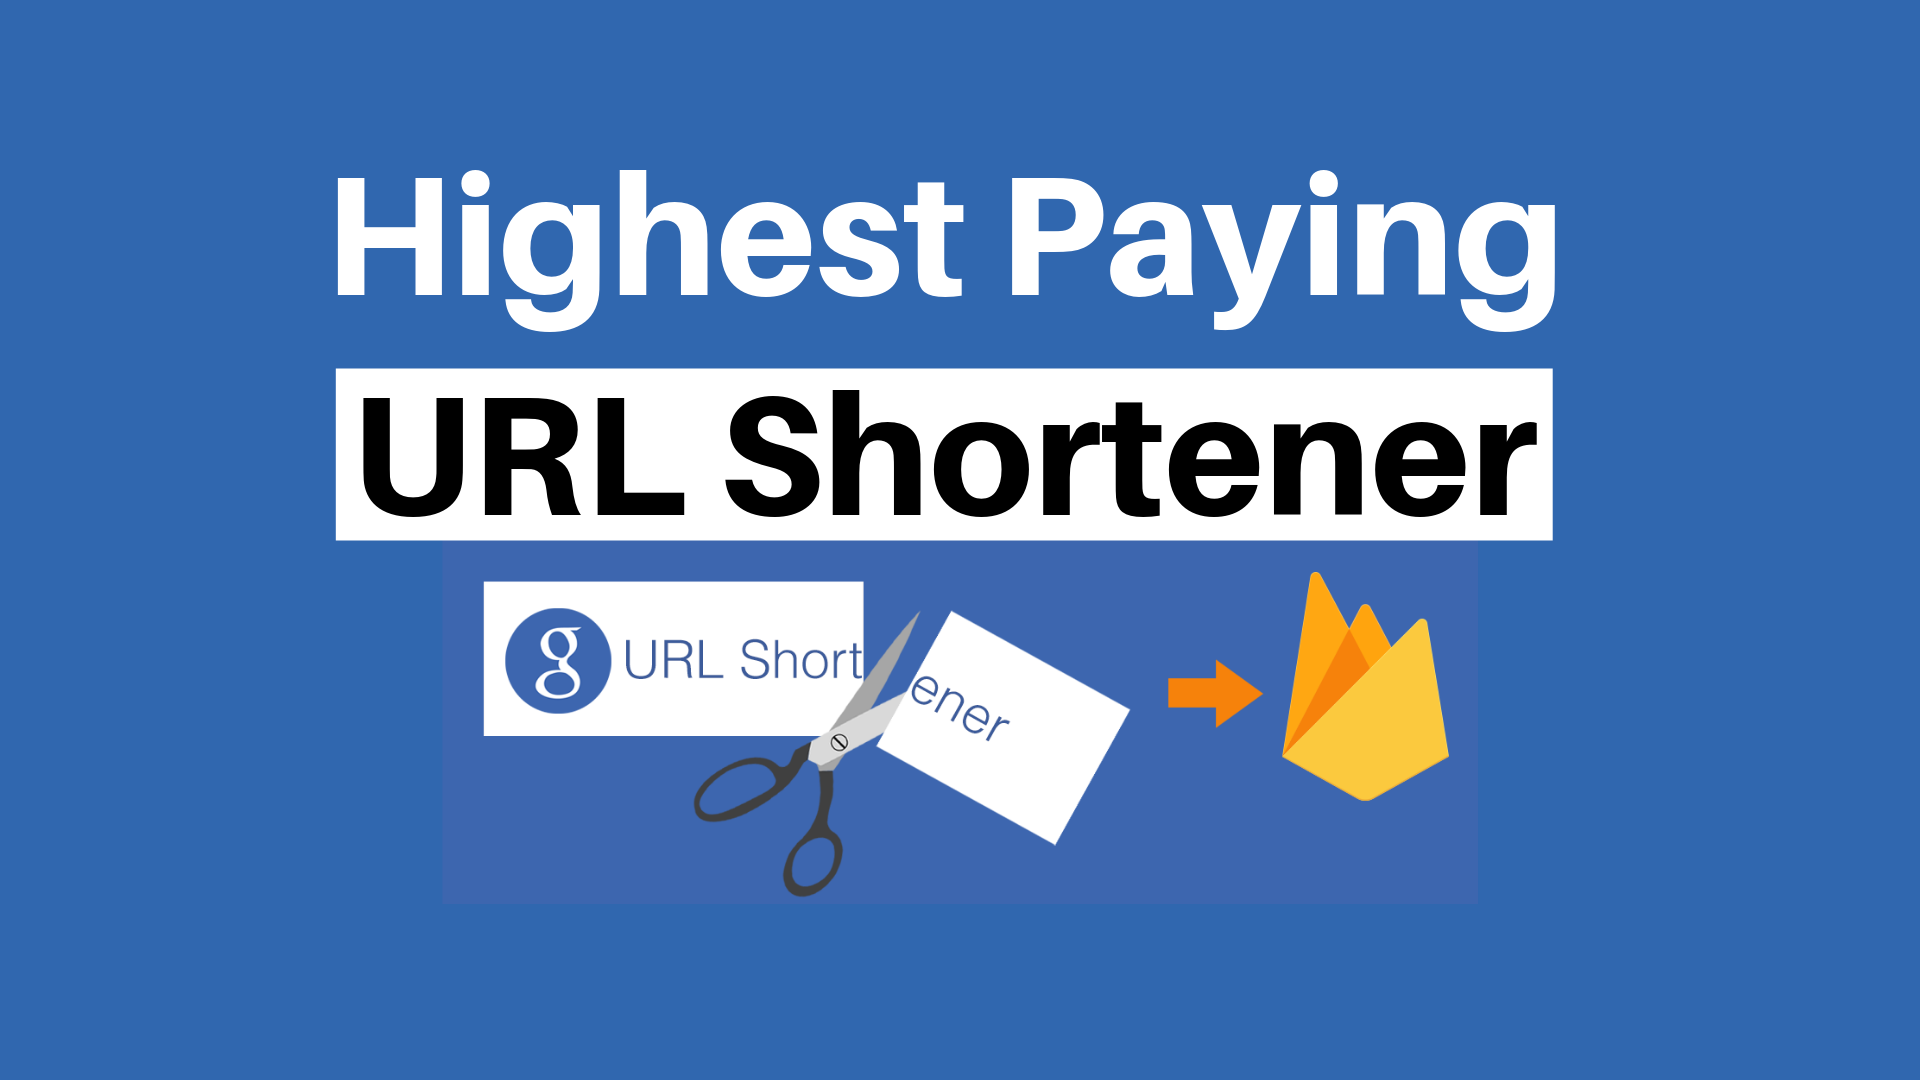 Best Highest Paying URL Shortner